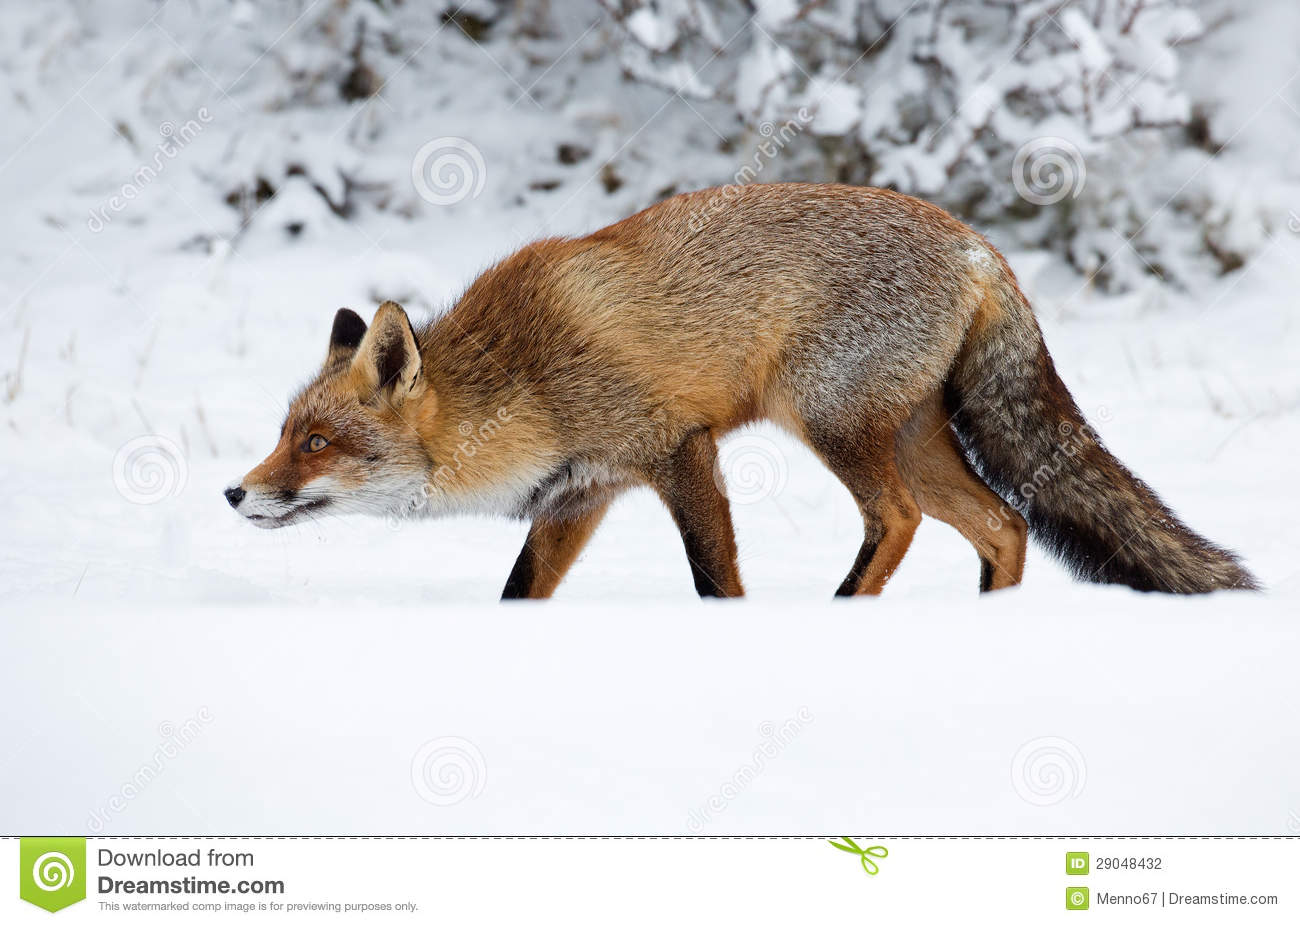 red fox in snow - photo #9